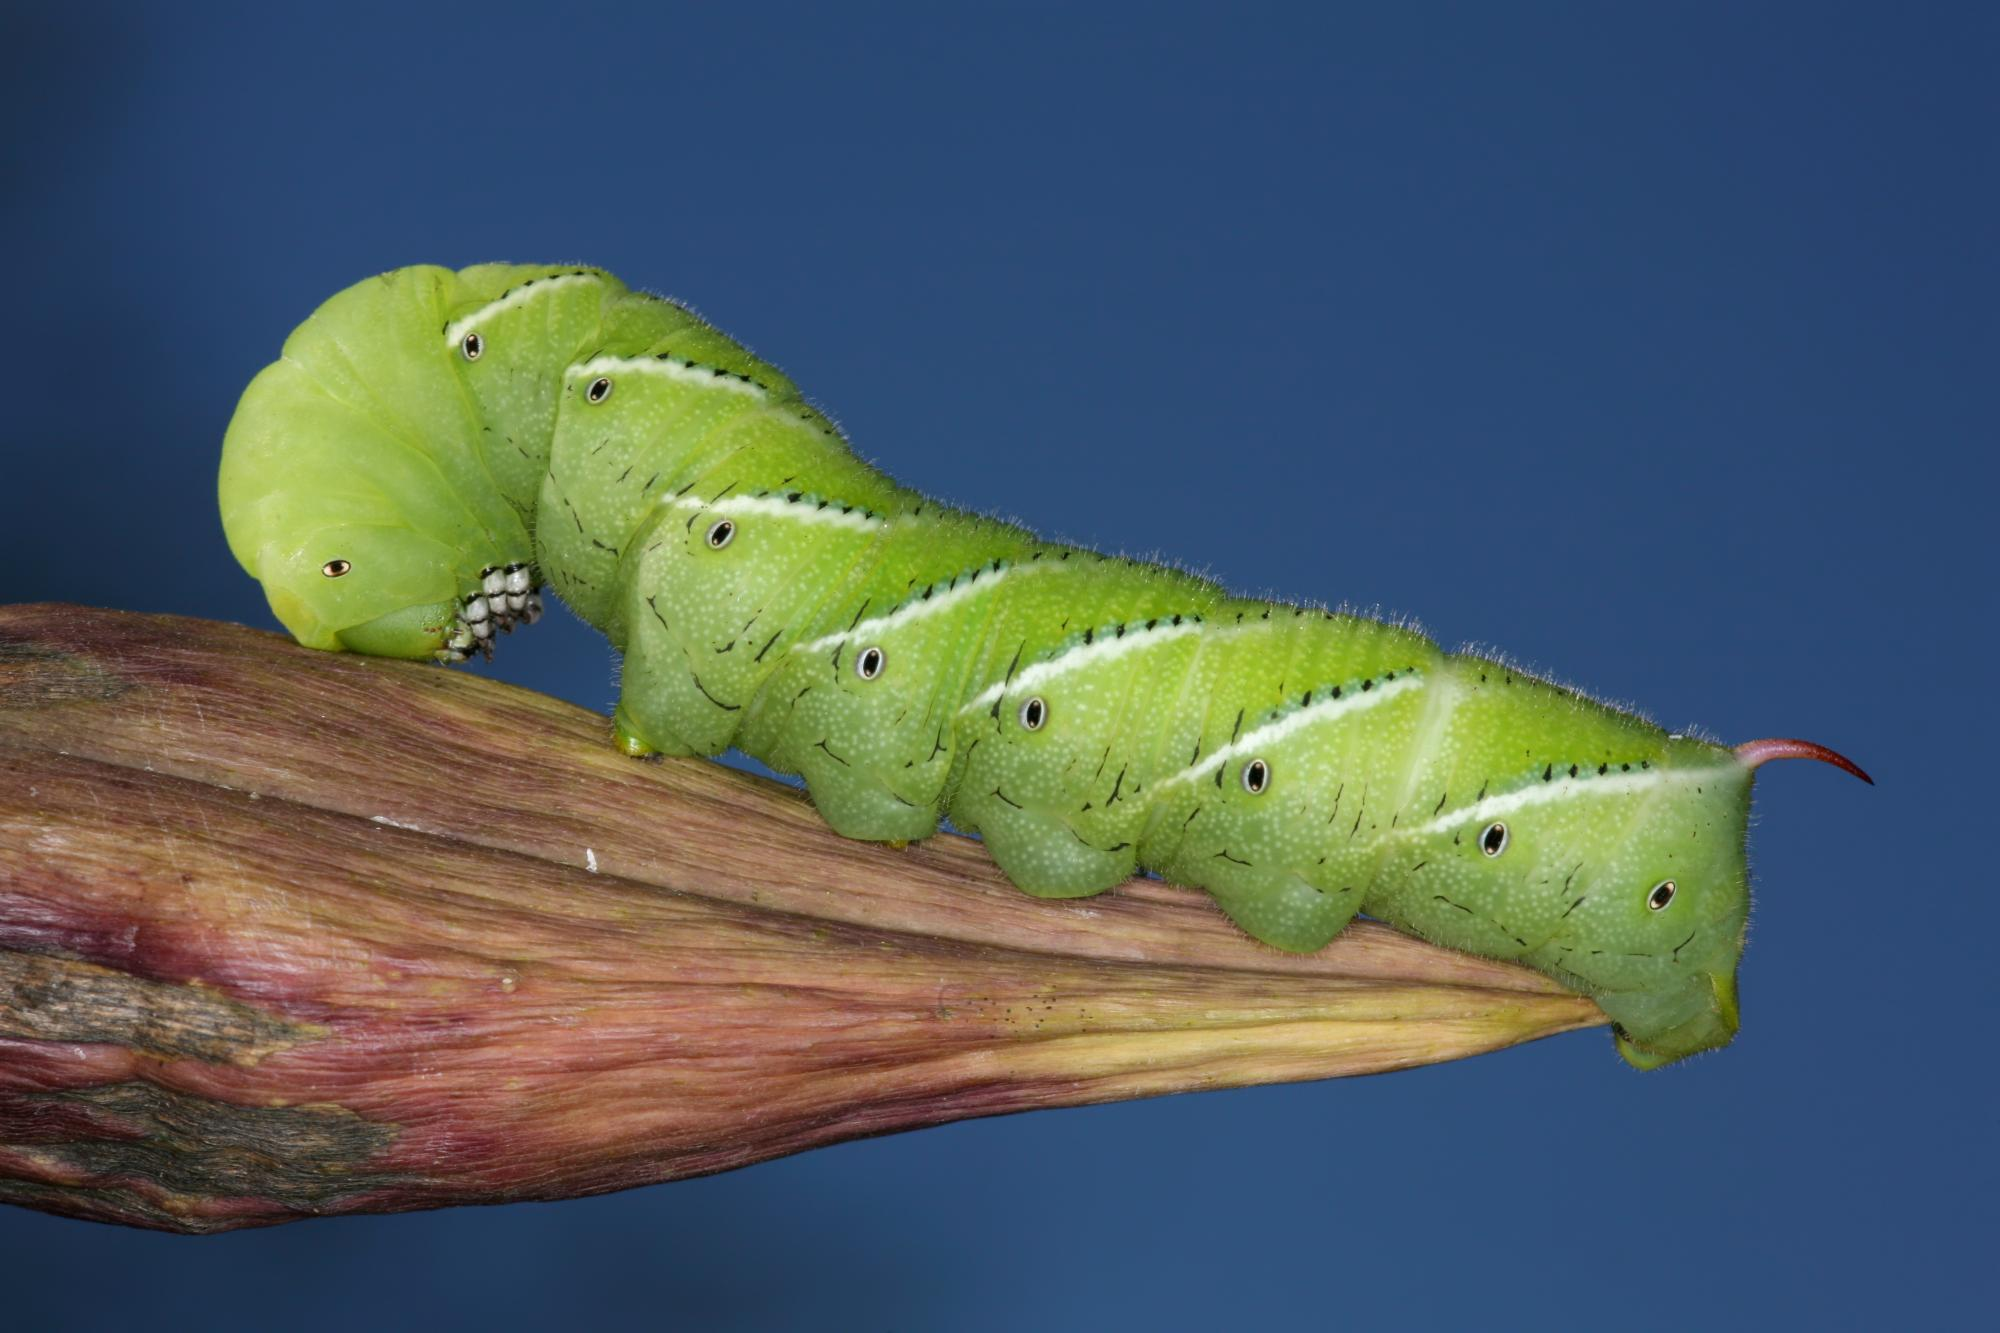 The caterpillars of the tobacco hornworm moth  can rival an adult index finger in size.